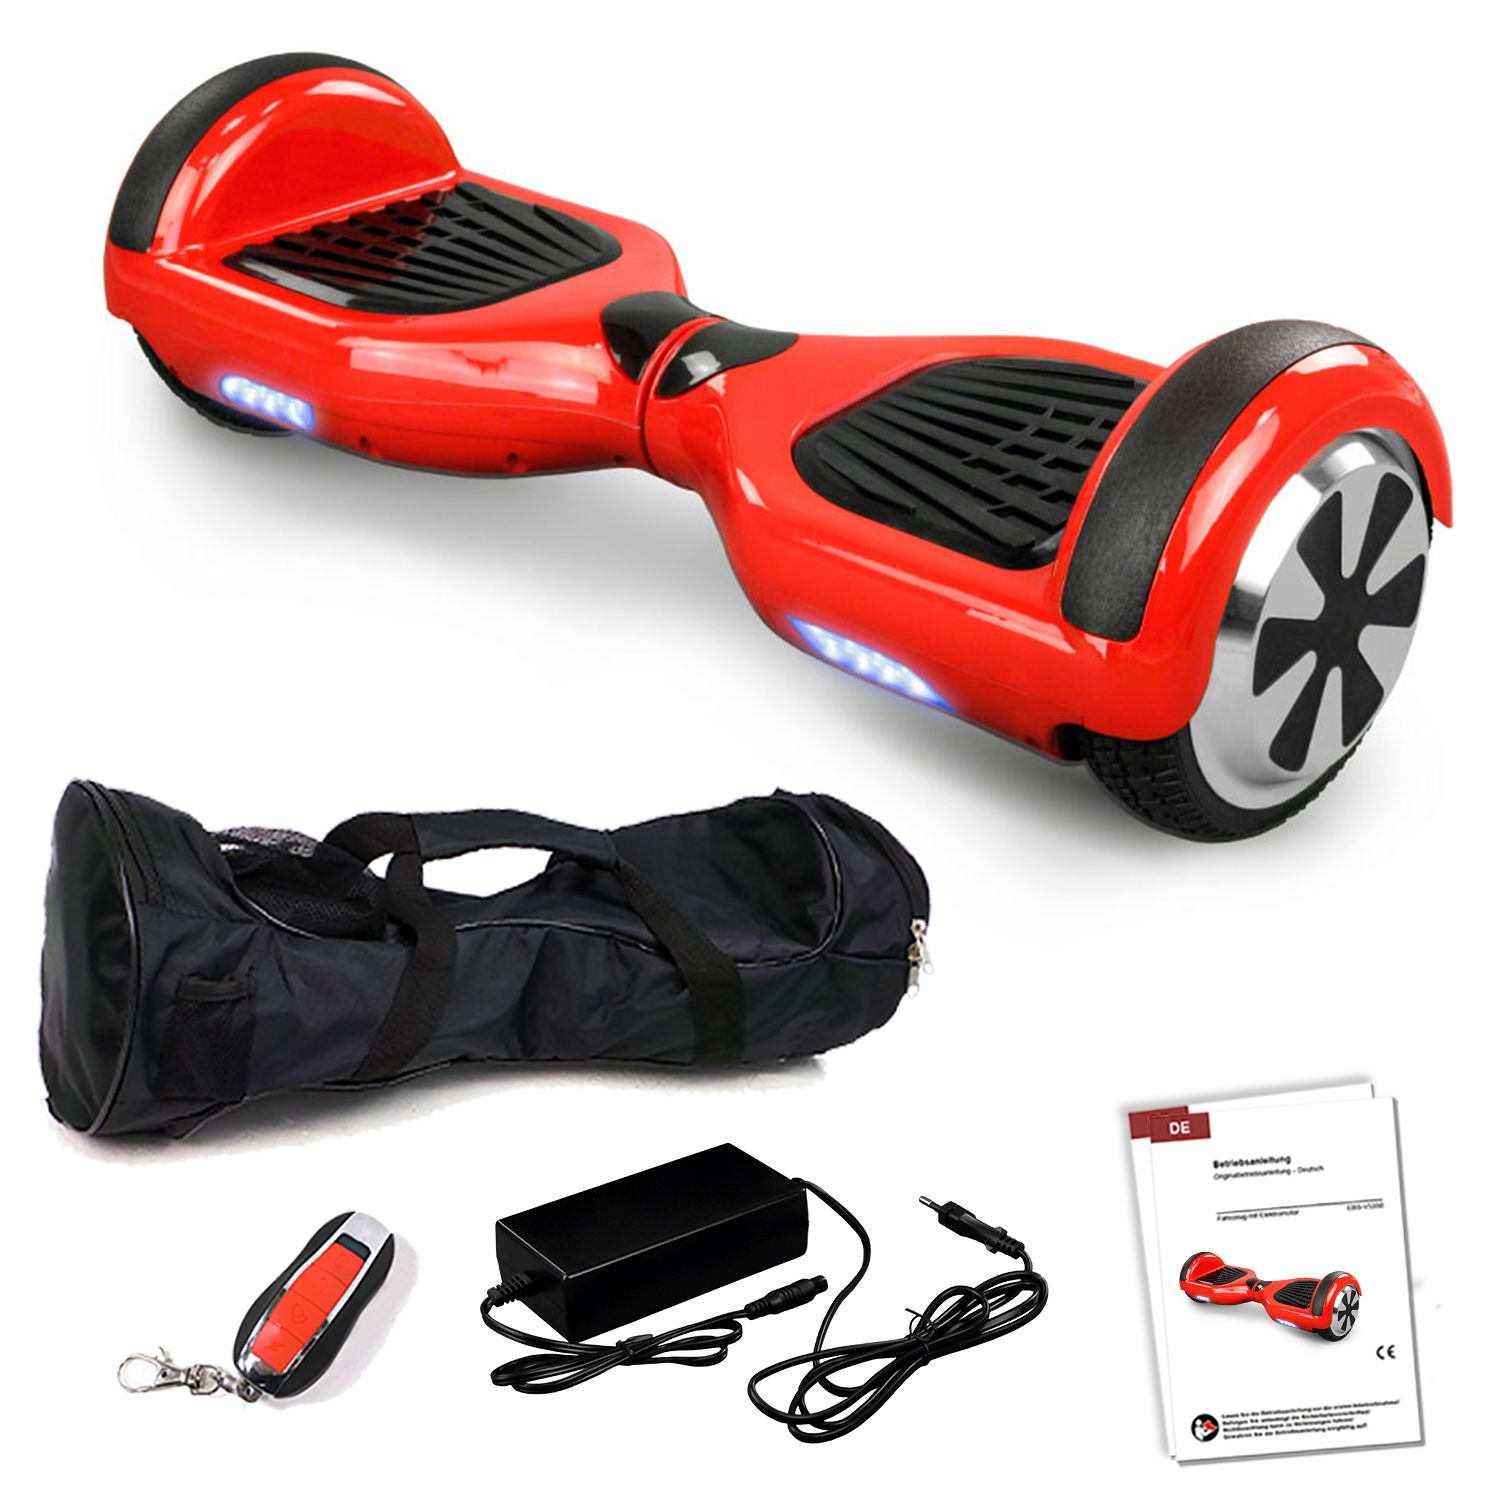 Suv Hoverboard For Sale | 2018, 2019, 2020 Ford Cars